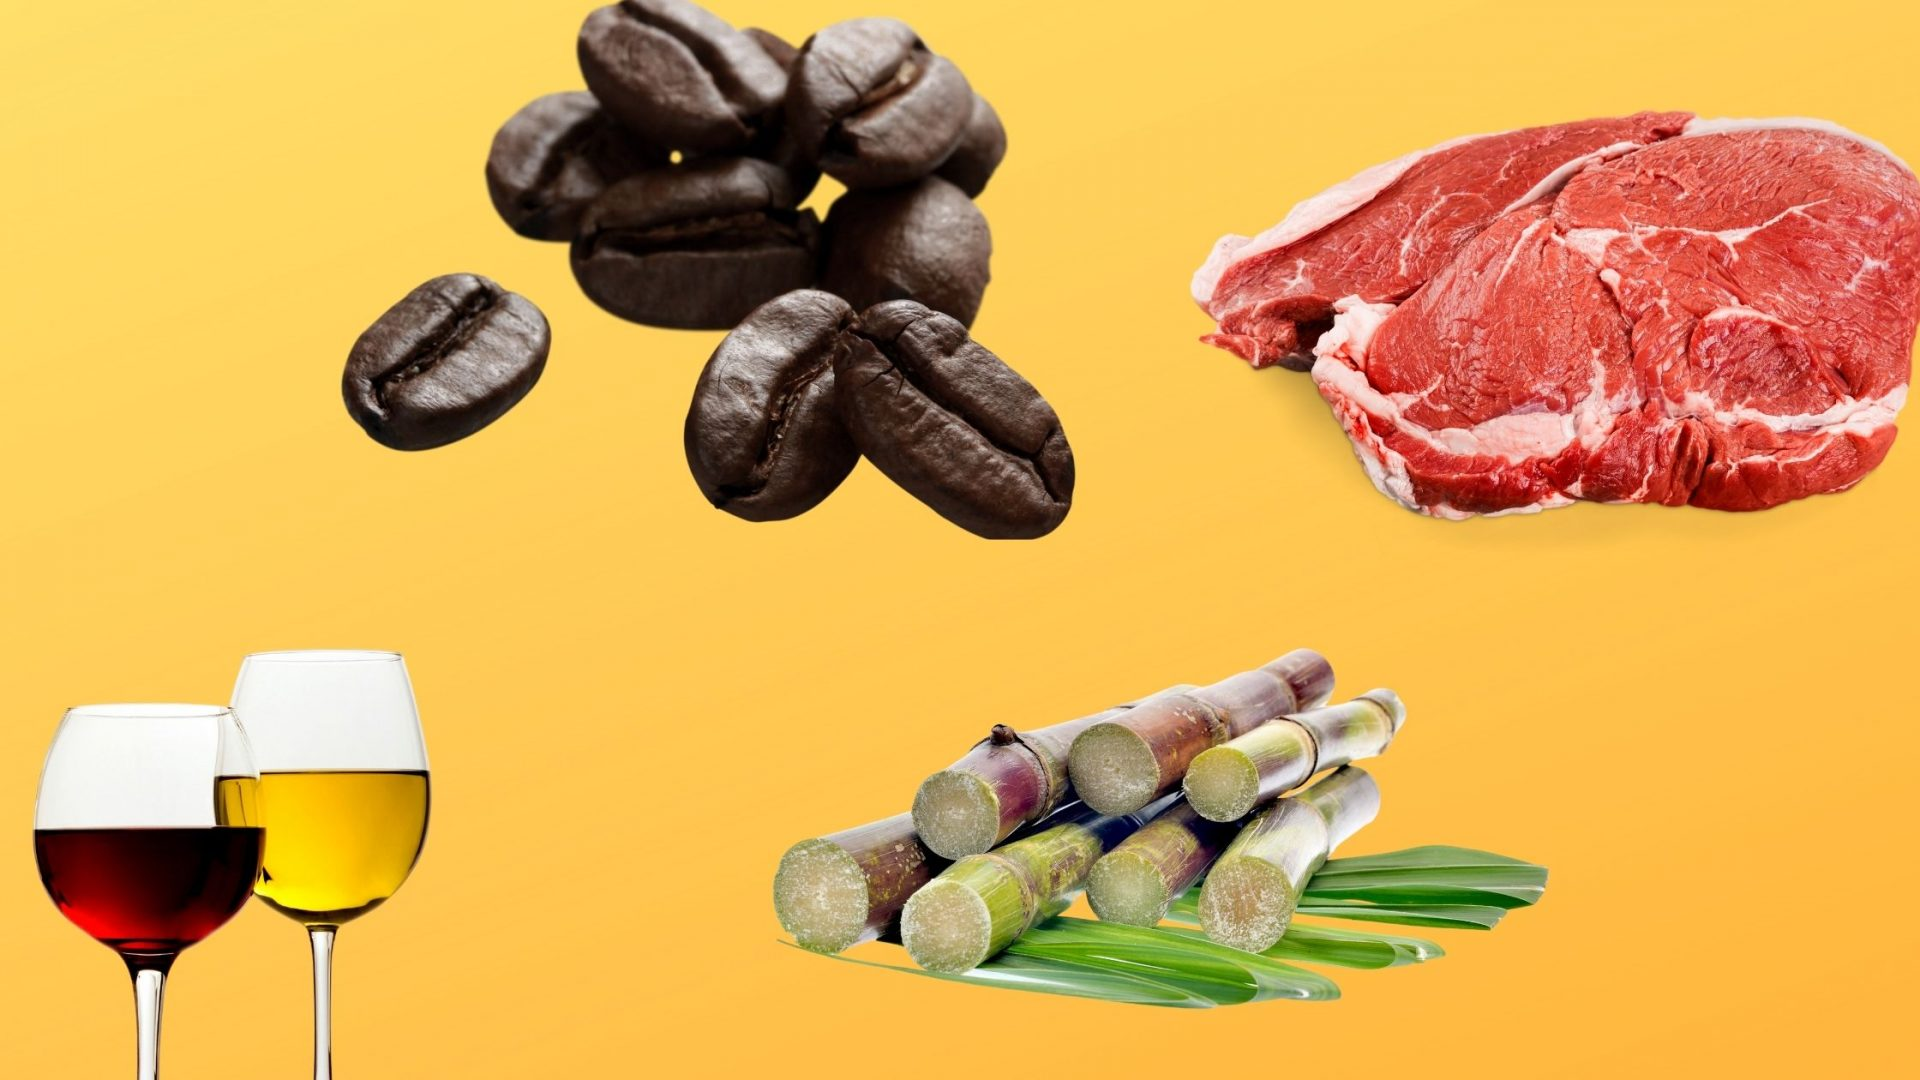 Foods that Can Harm Your Vagina